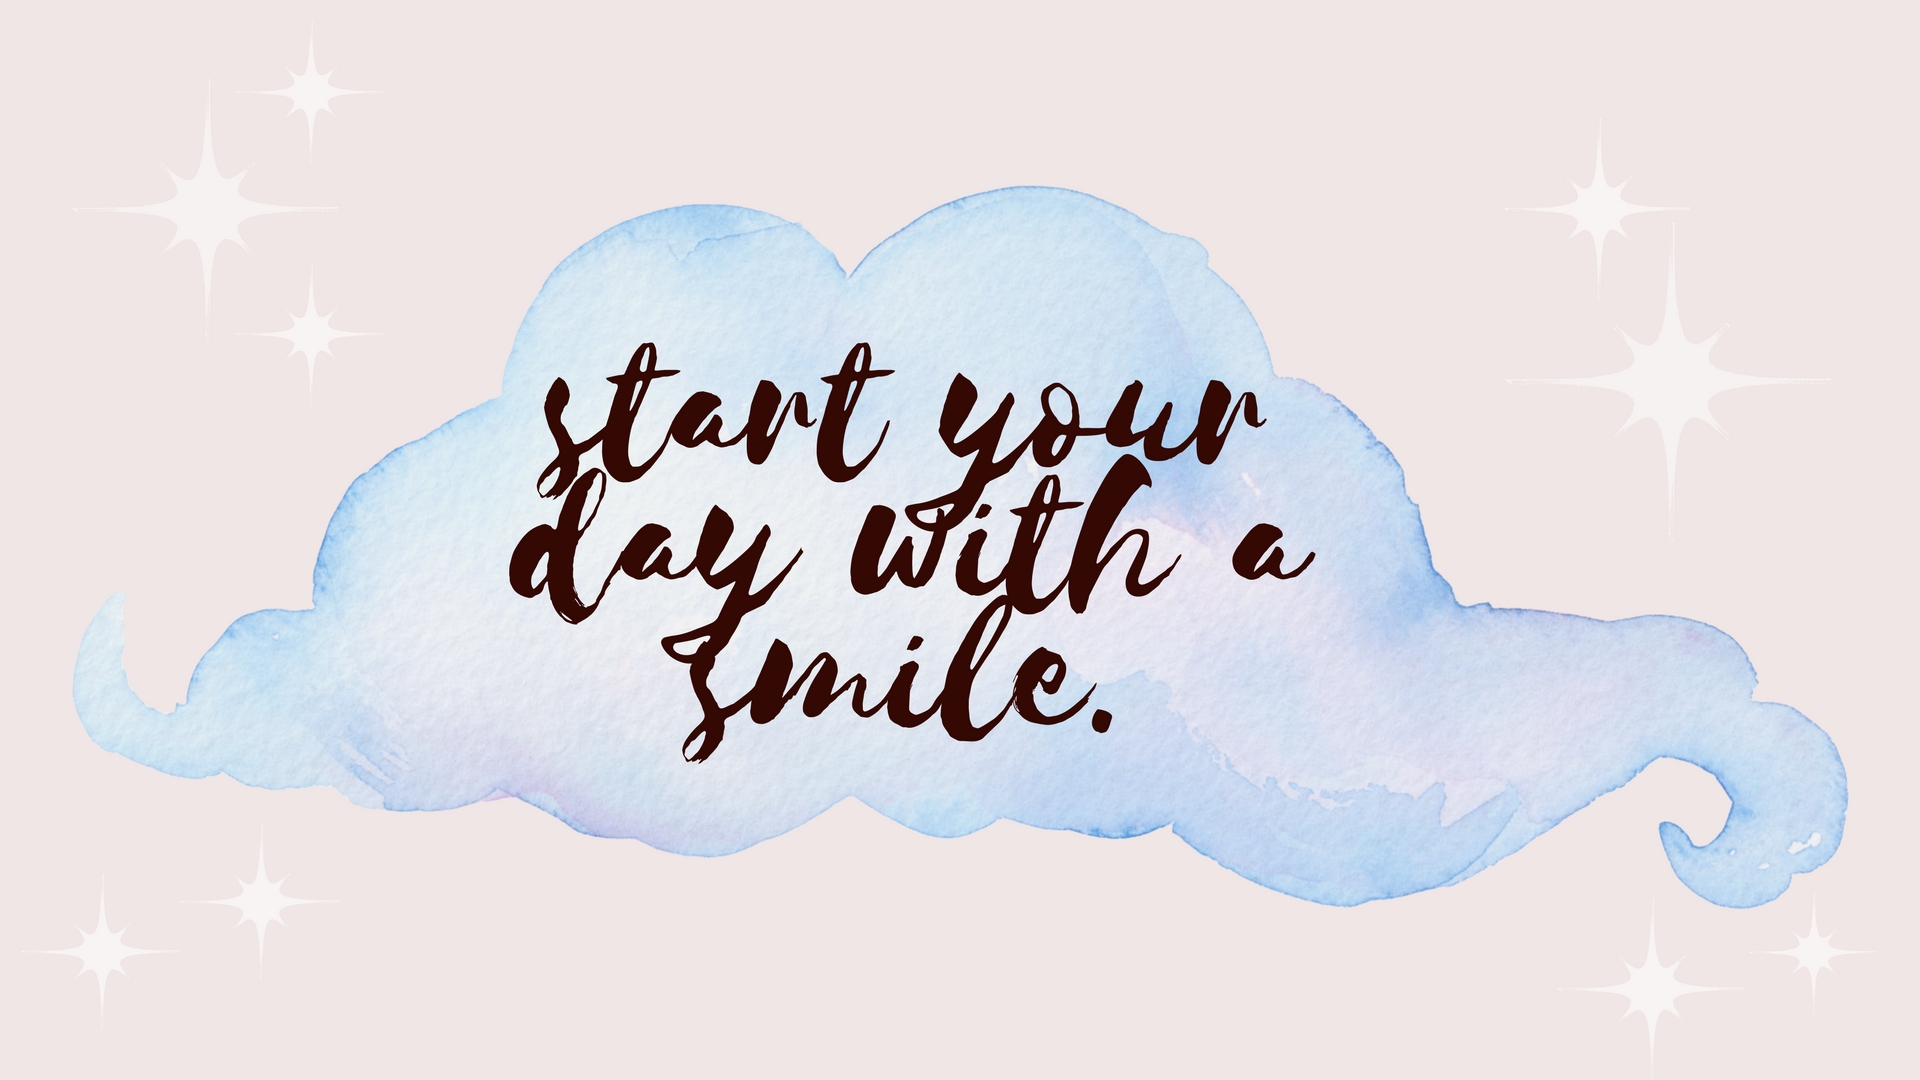 Cute Pintrest Quote Wallpapers 9 Magical Desktop Amp Mobile Wallpapers Fit For A Unicorn